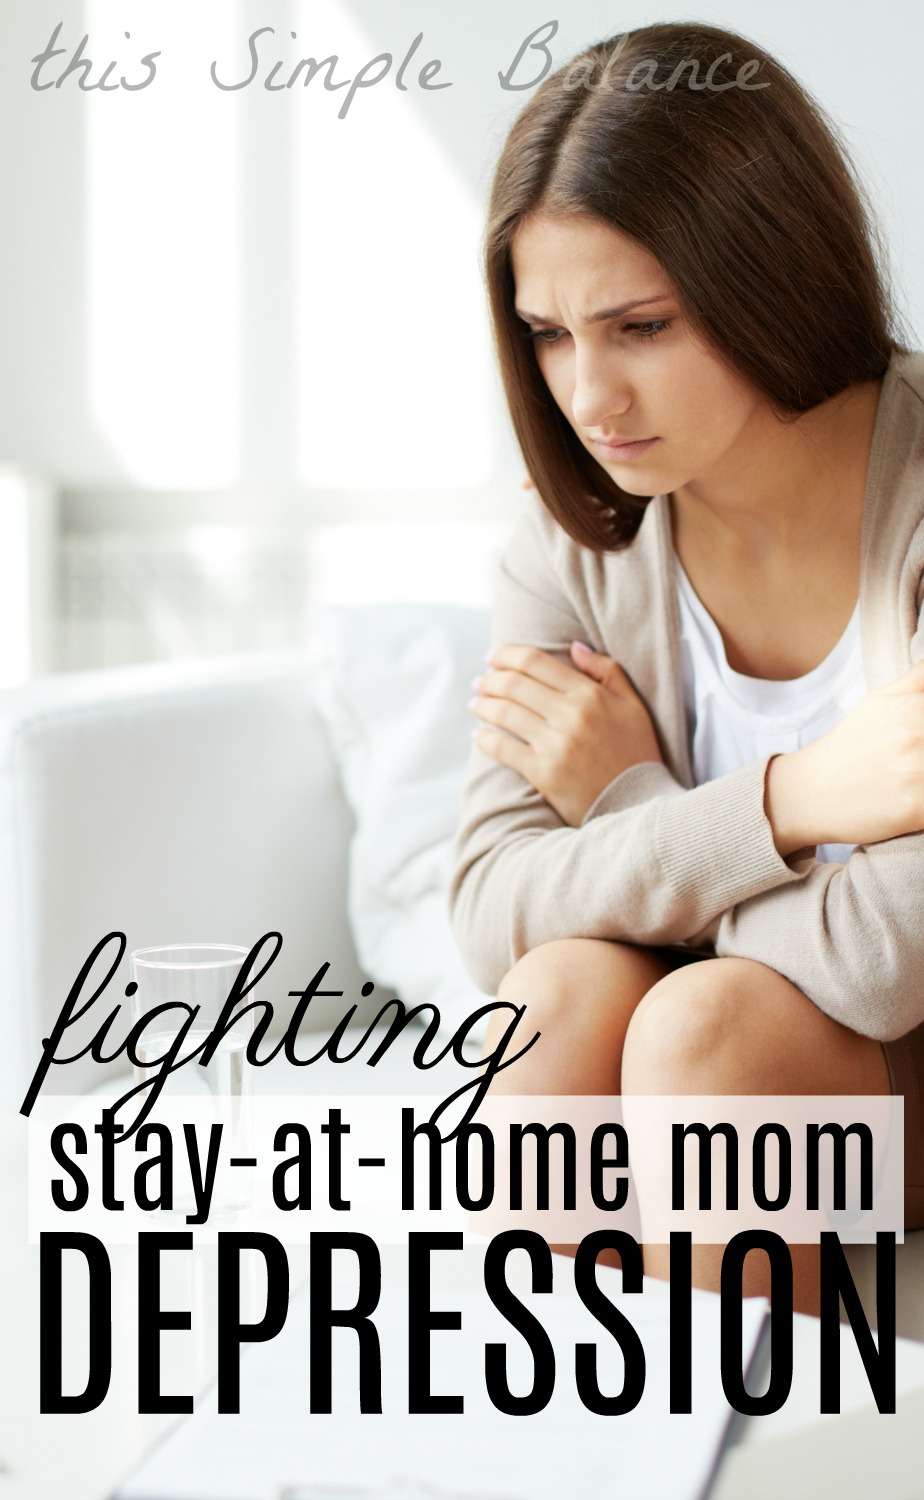 Have you ever experienced stay at home mom depression? Here's how one stay at home mom chose to fight depression.